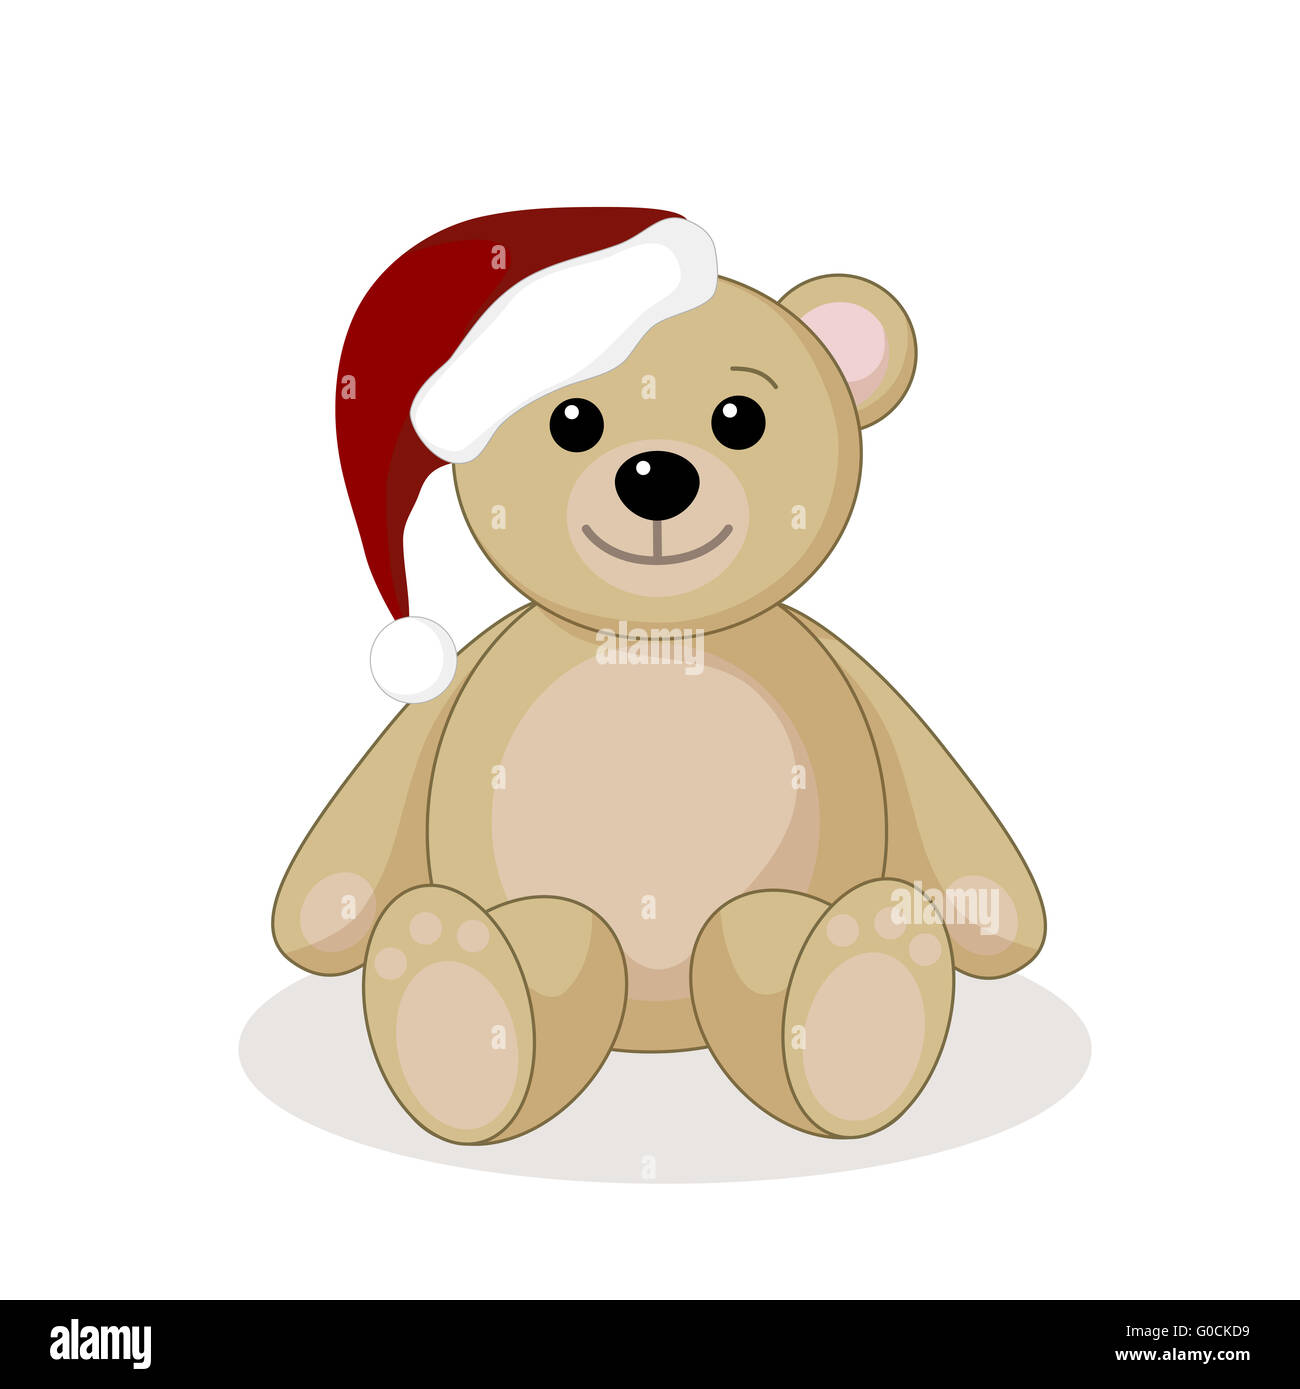 Teddy with Santa hat - Stock Image